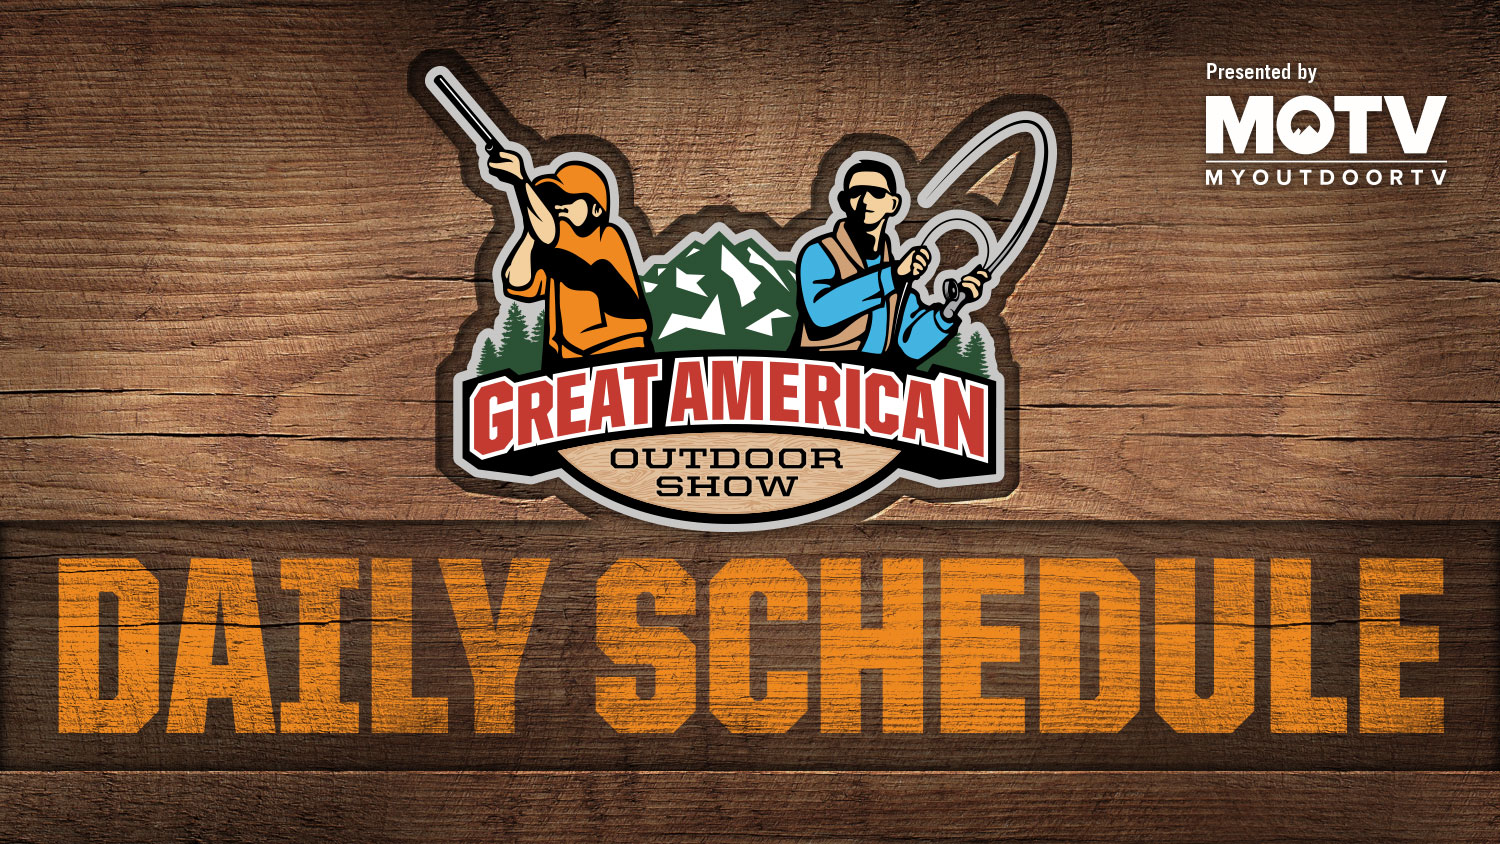 Great American Outdoor Show: Day 4 Schedule